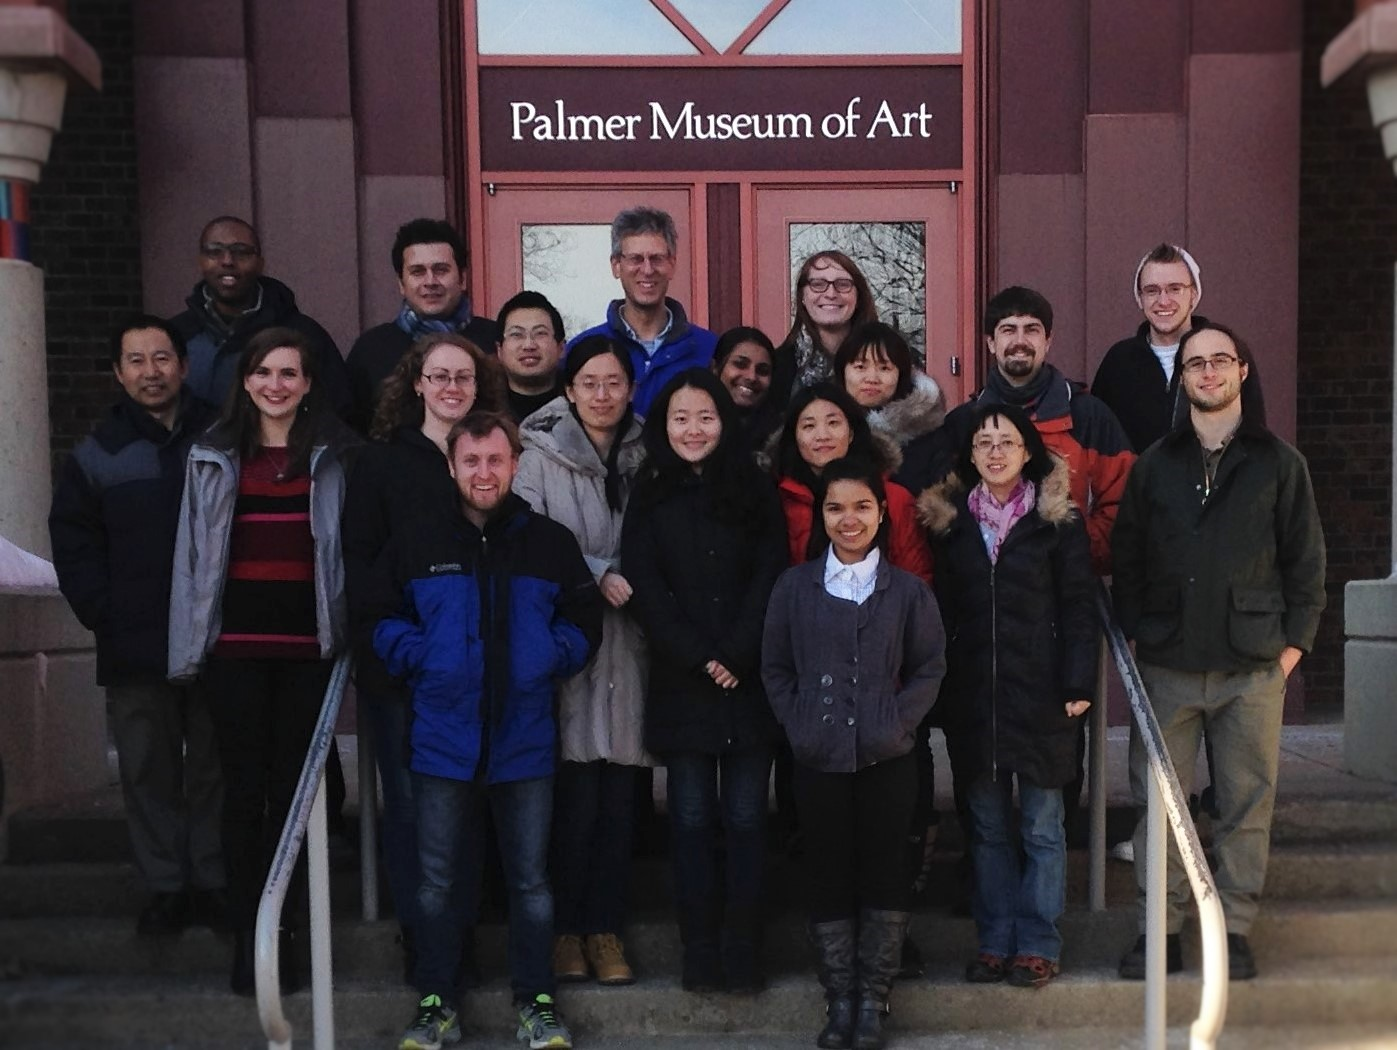 Cremer Group--Spring 2015 (Front row left to right: Matt Poyton, Emily Cribas; Second row left to right: Virginia Greenberger, Anne Sendeki, Xiao Cong, Simou Sun, Yi-Ting Liao, Xiangyi Huang, Brad Rogers; Third row left to right: Tinglu Yang, Yi Liu, Saranya Pullanchery, Seung-Yi Lee, Codey Henderson; Back row left to right: Kelvin Rembert, Halil Okur, Paul Cremer, Alexis Baxter, Blaise Pfaff